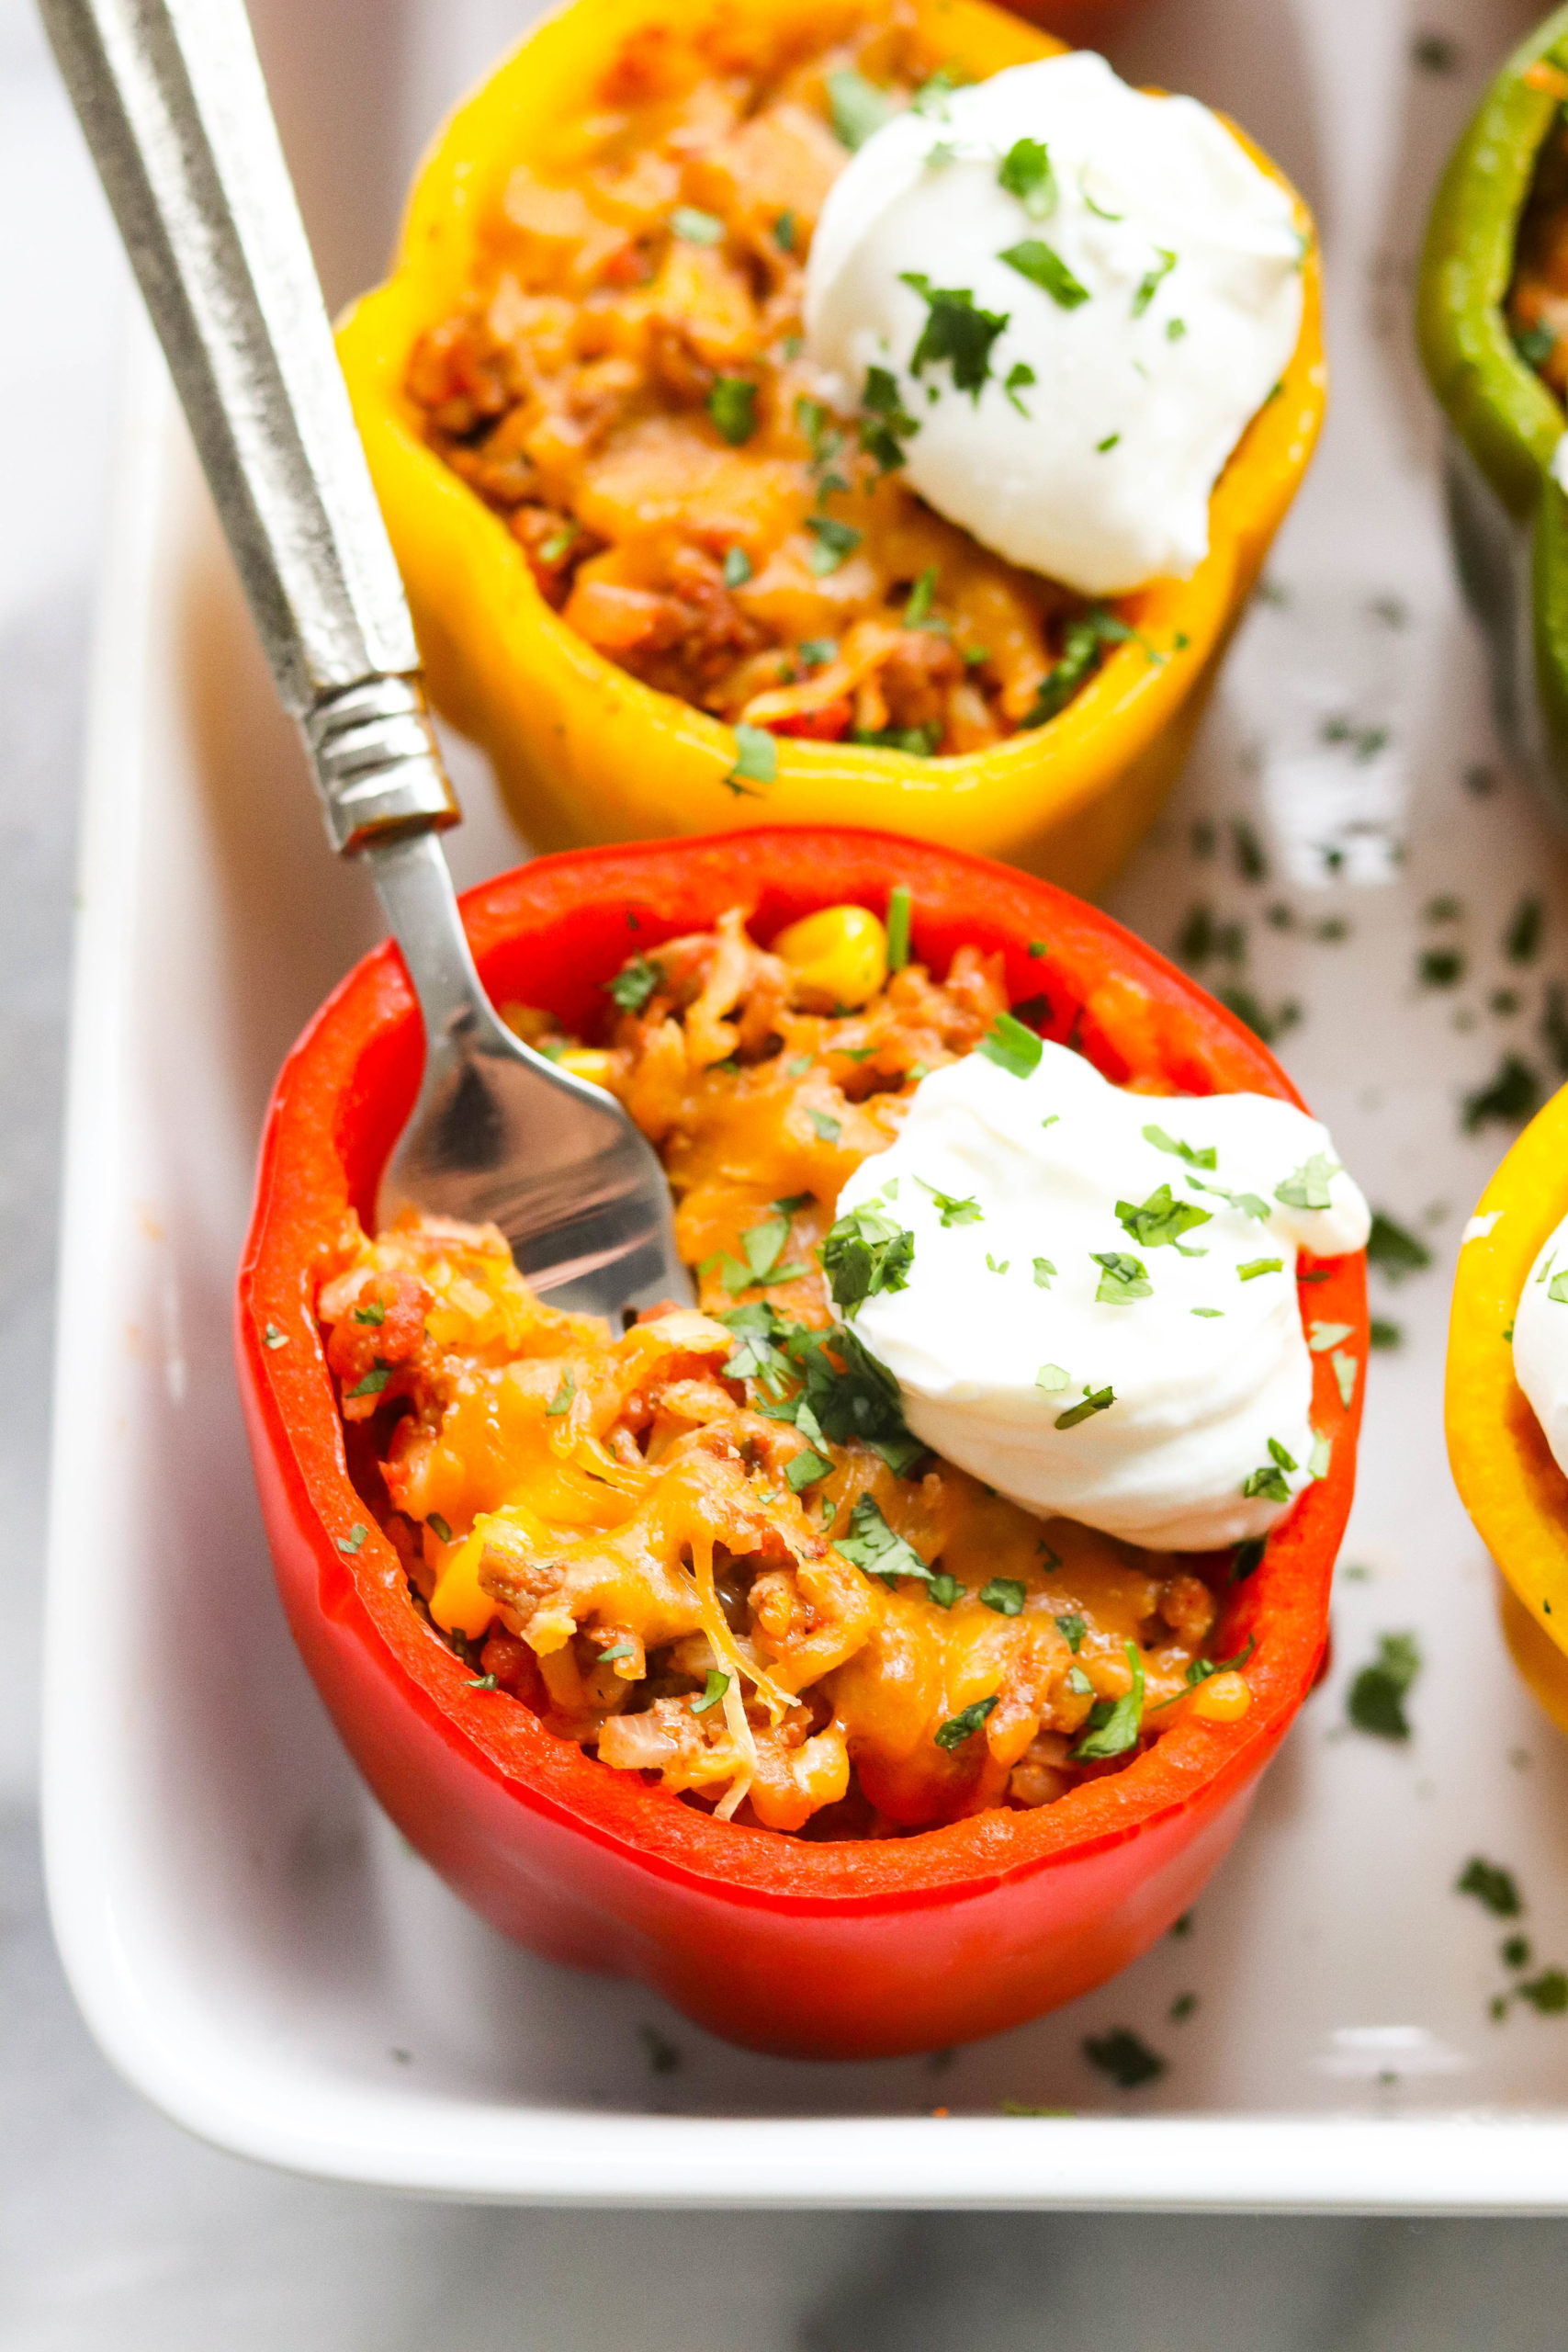 pan of taco stuffed bell peppers with sour cream and herbs on top